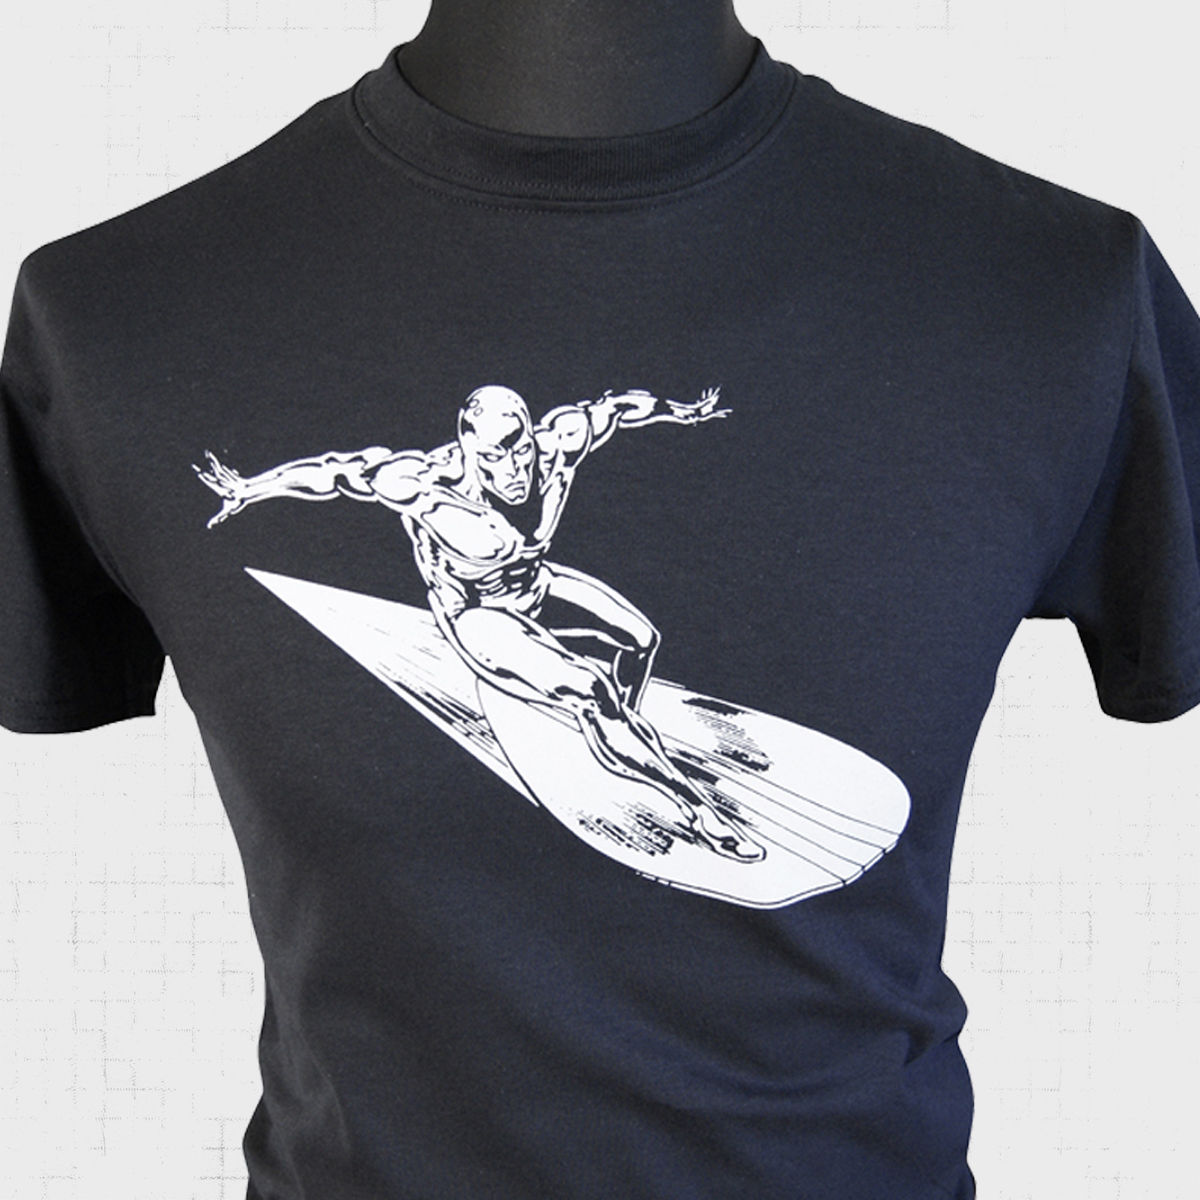 The Silver Surfer T Shirt Fantastic Four Retro Comic Super hero Sci Fi New T Shirts Funny Tops Tee New Unisex Funny Tops